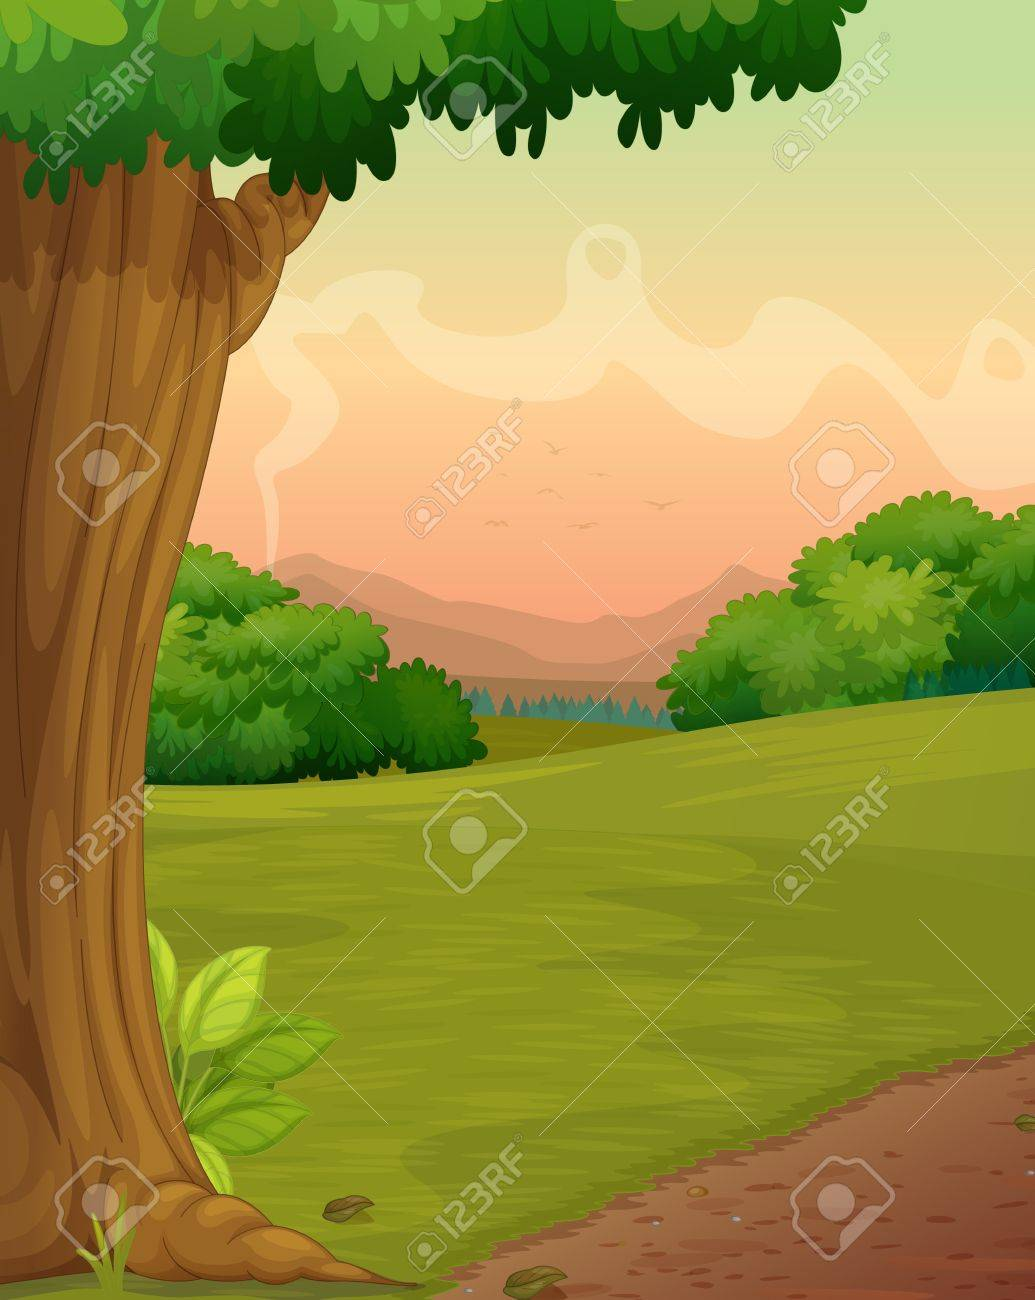 Illustration of a path in a rural setting Stock Vector - 13376900